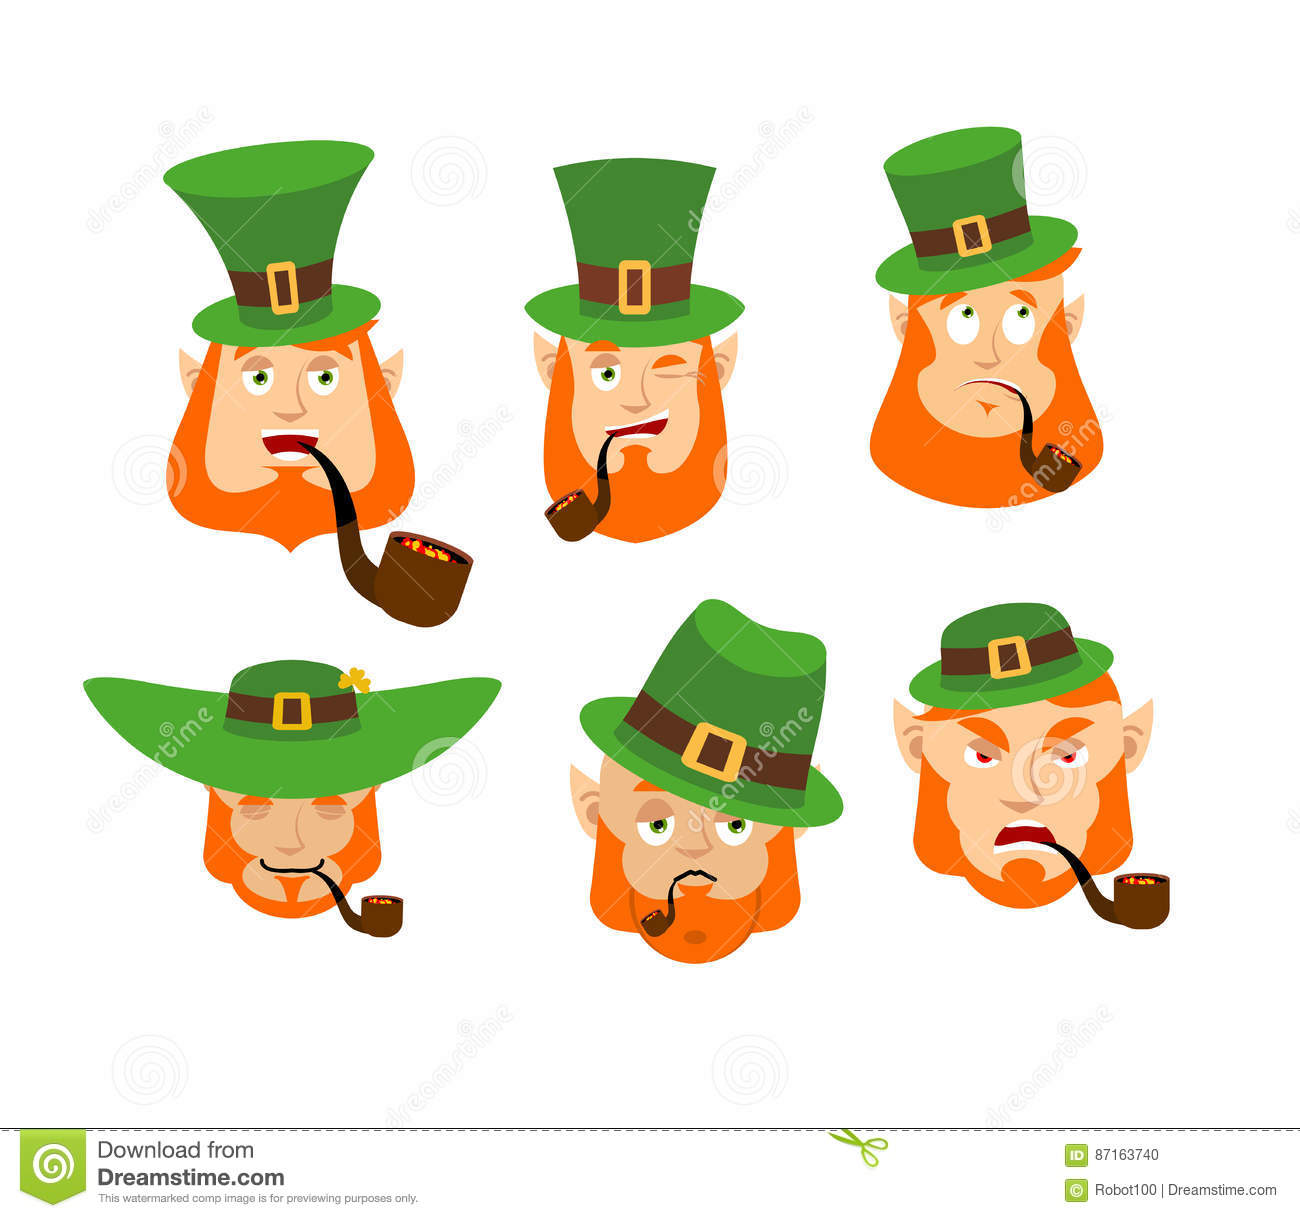 585aaee9638 Happy and Sad. Angry and sleeping. surprised and winks. Dwarf with red  beard. Irish elf emotions.